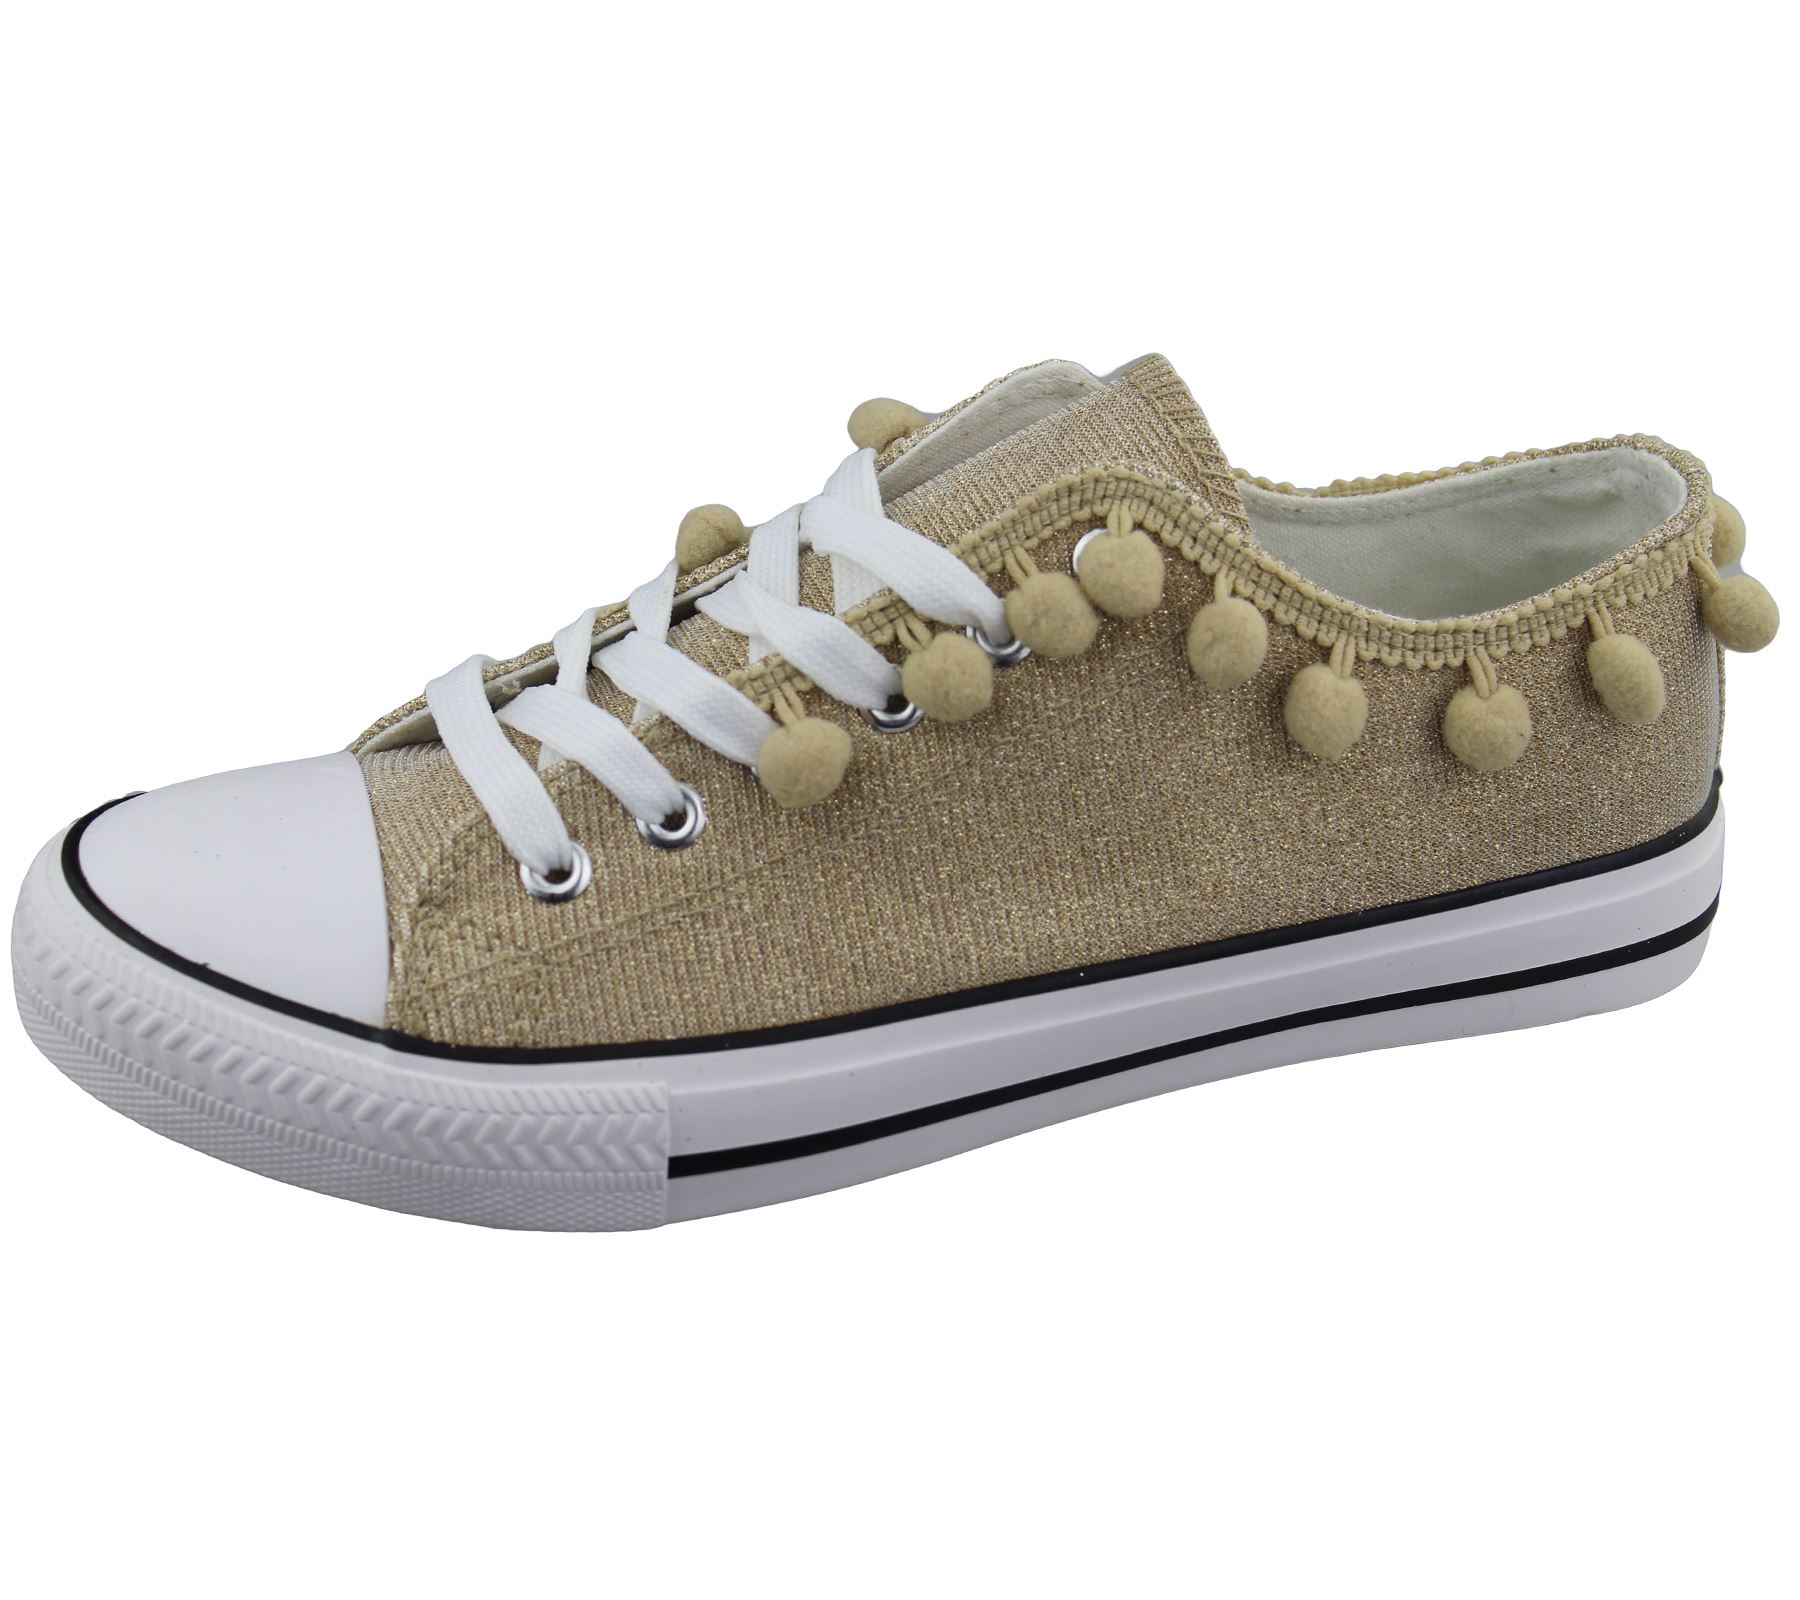 Womens-Sneakers-Flat-Pumps-Ladies-Glittered-Summer-Plimsole-Canvas-Shoes thumbnail 19